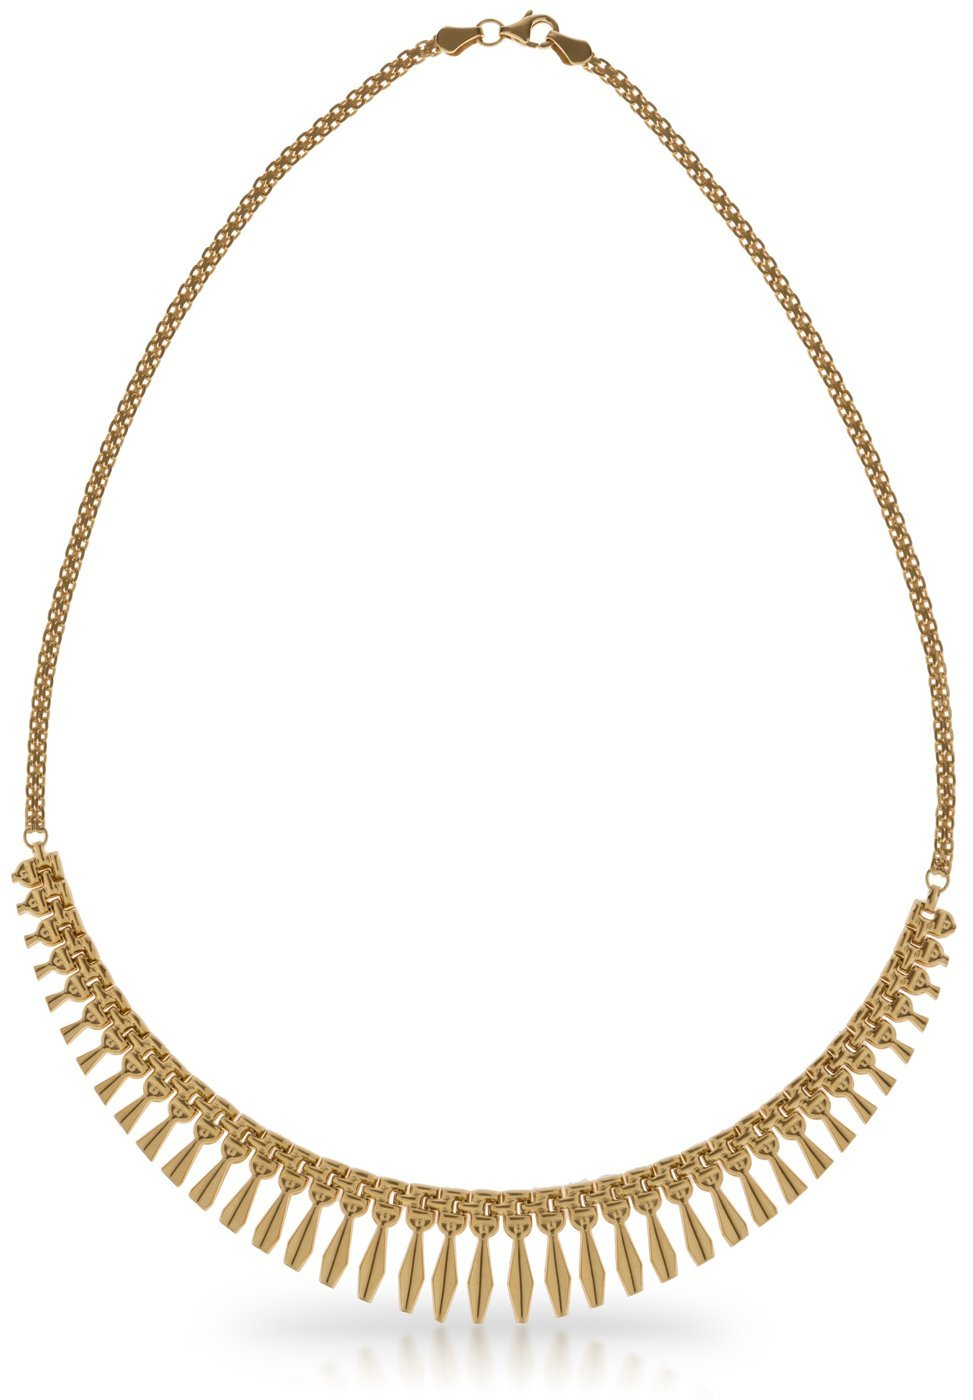 SilverLuxe 925 Sterling Silver Gold Plated Collar Style Cleopatra Necklace